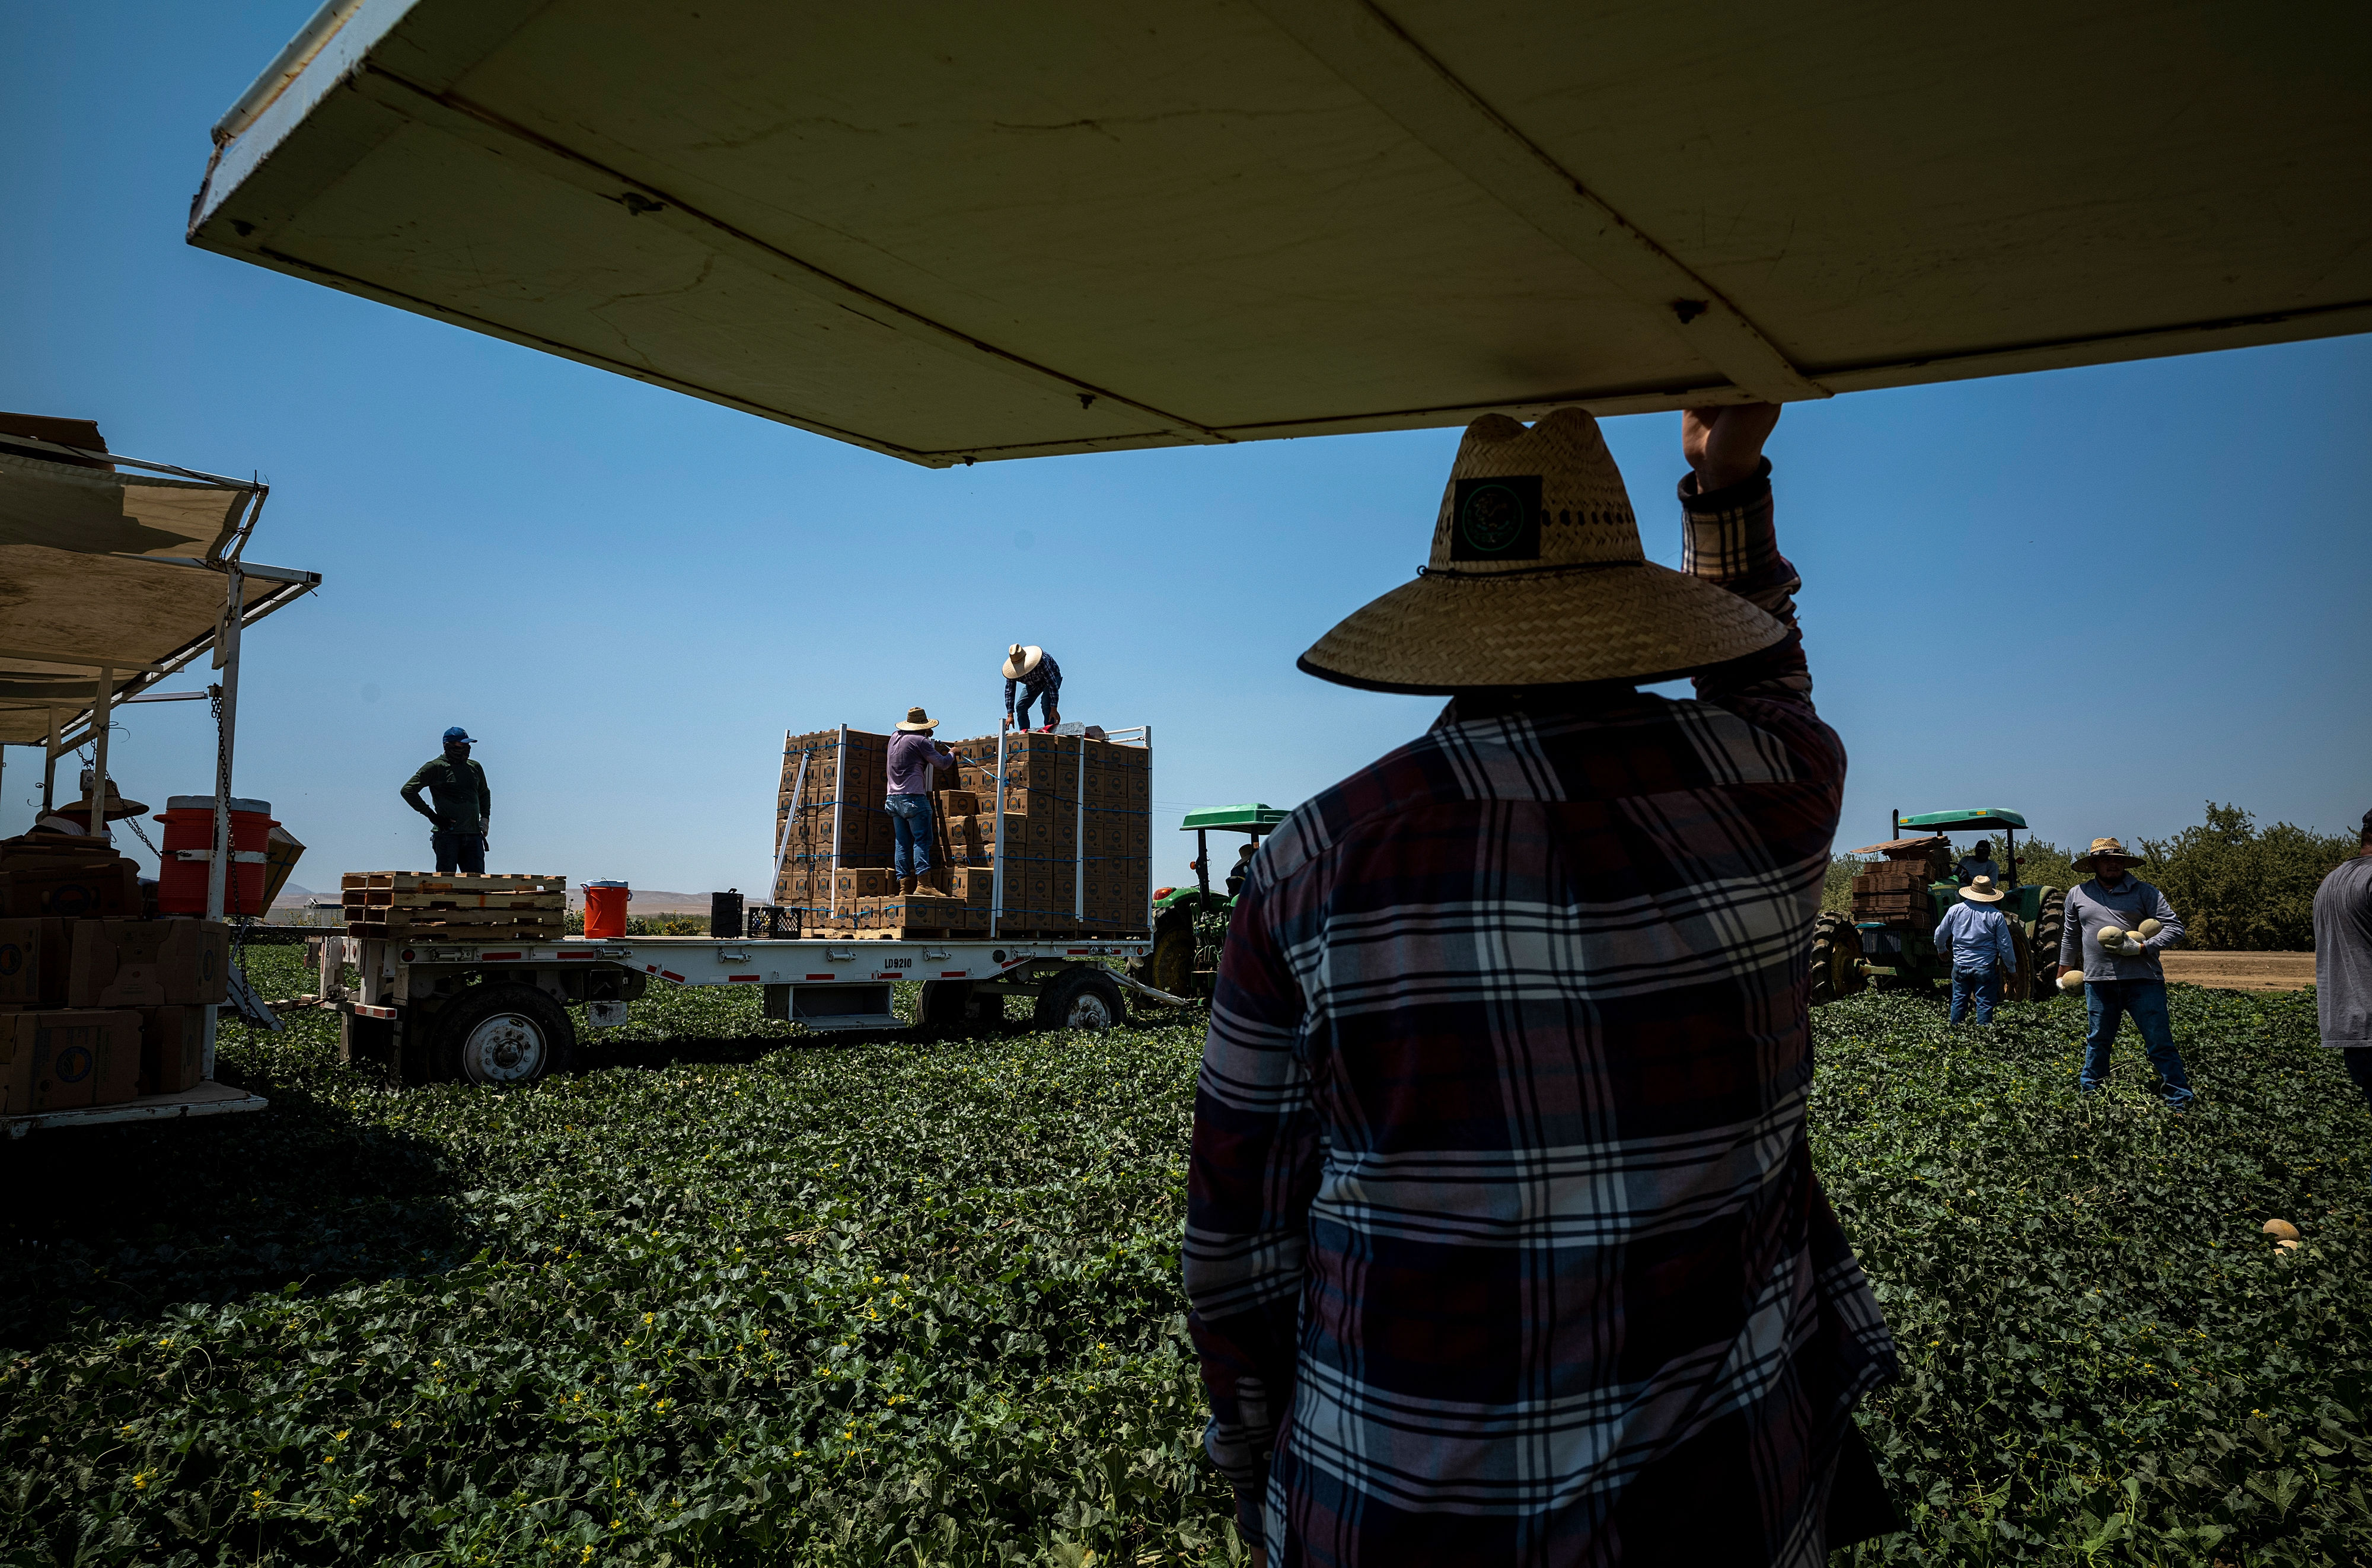 Workers harvest cantaloupe on a farm during a drought in Firebaugh, California, on July 13, 2021.